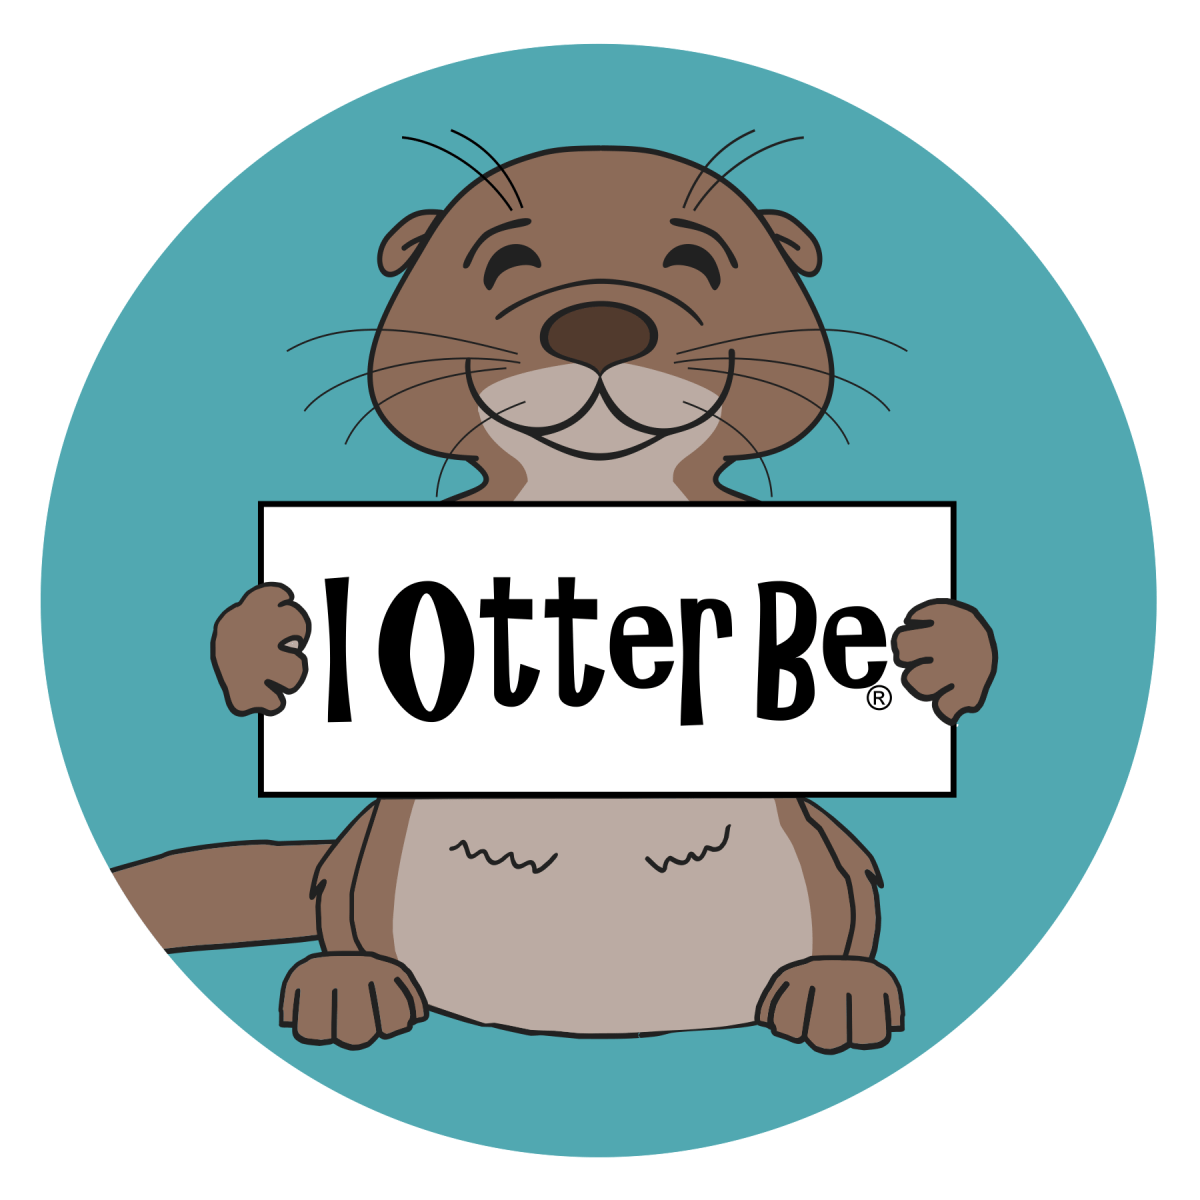 I Otter Be Category Icon